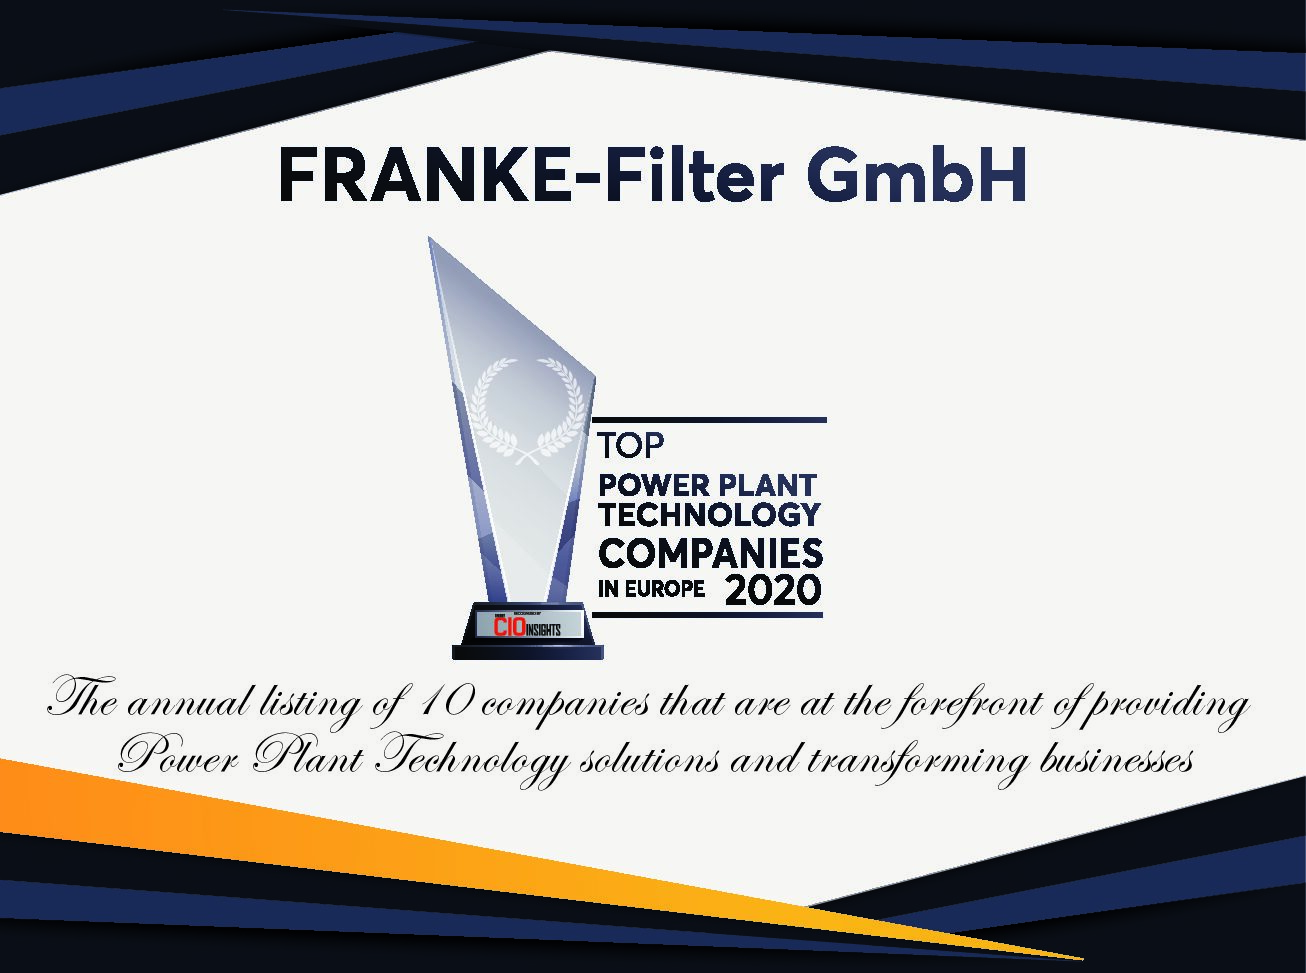 FRANKE-Filter Top 10 power plant company